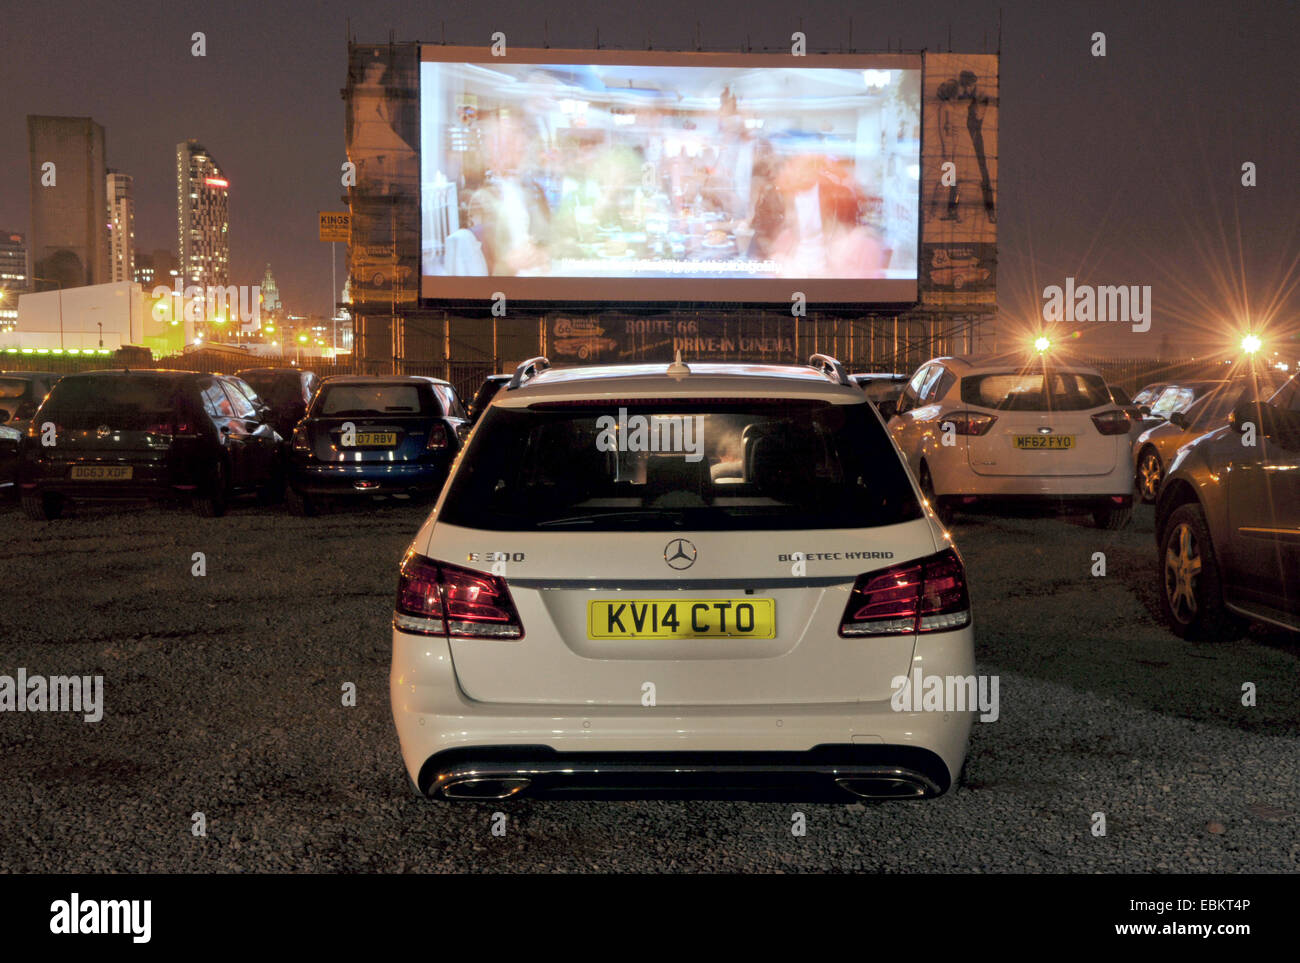 Drive in cinema in Liverpool, UK, showing Grease - Stock Image